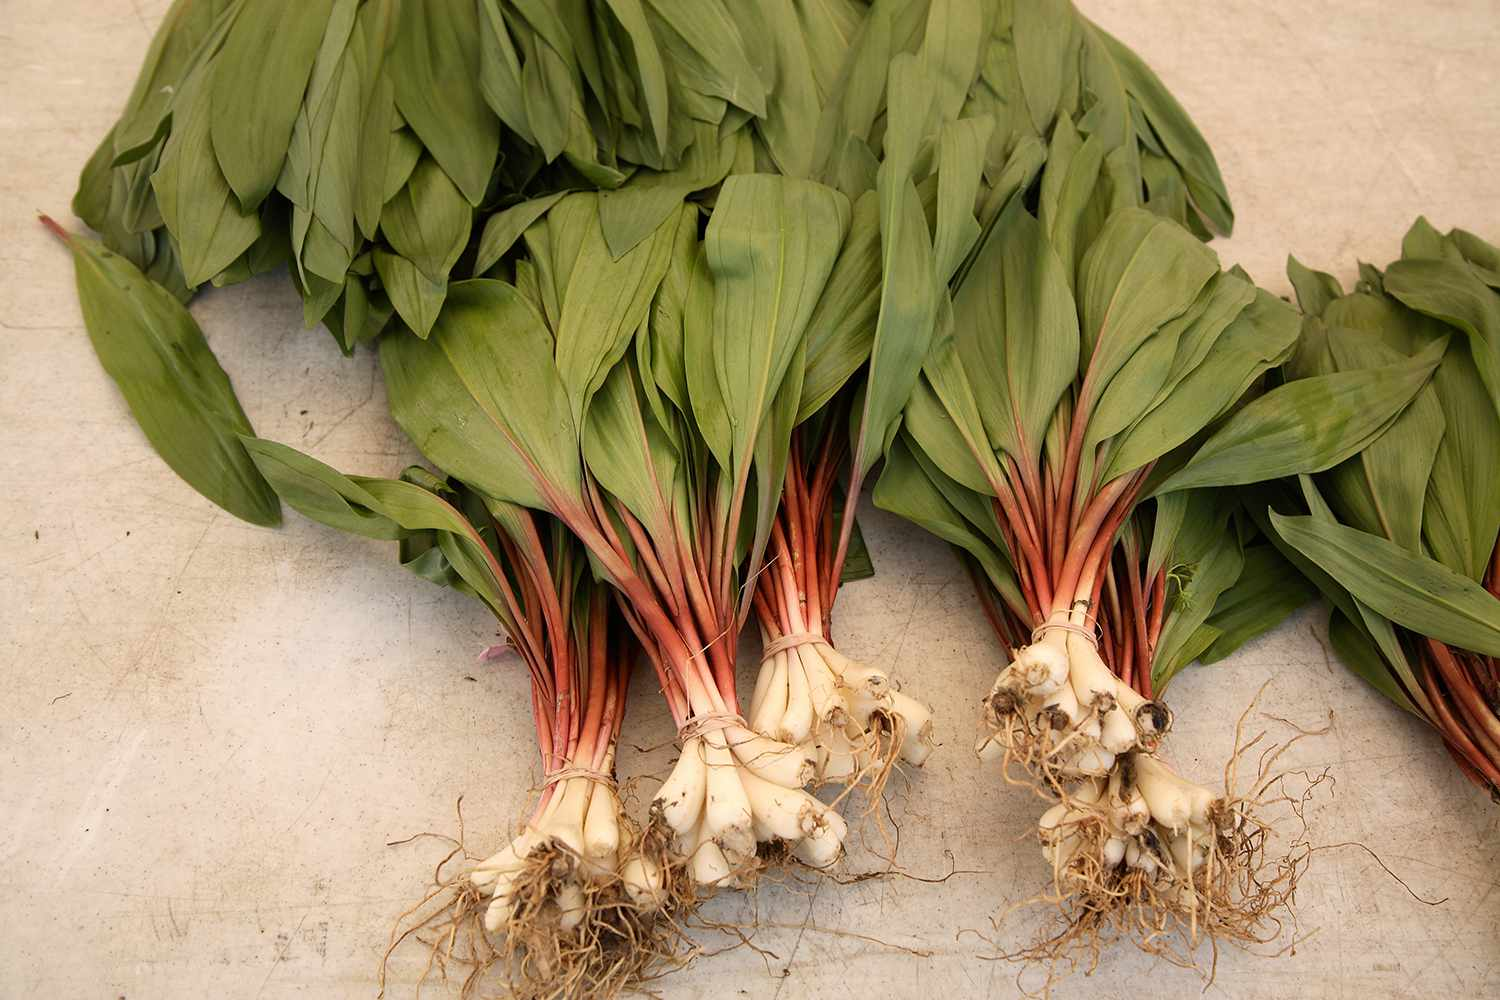 Wild ramps in NYC.